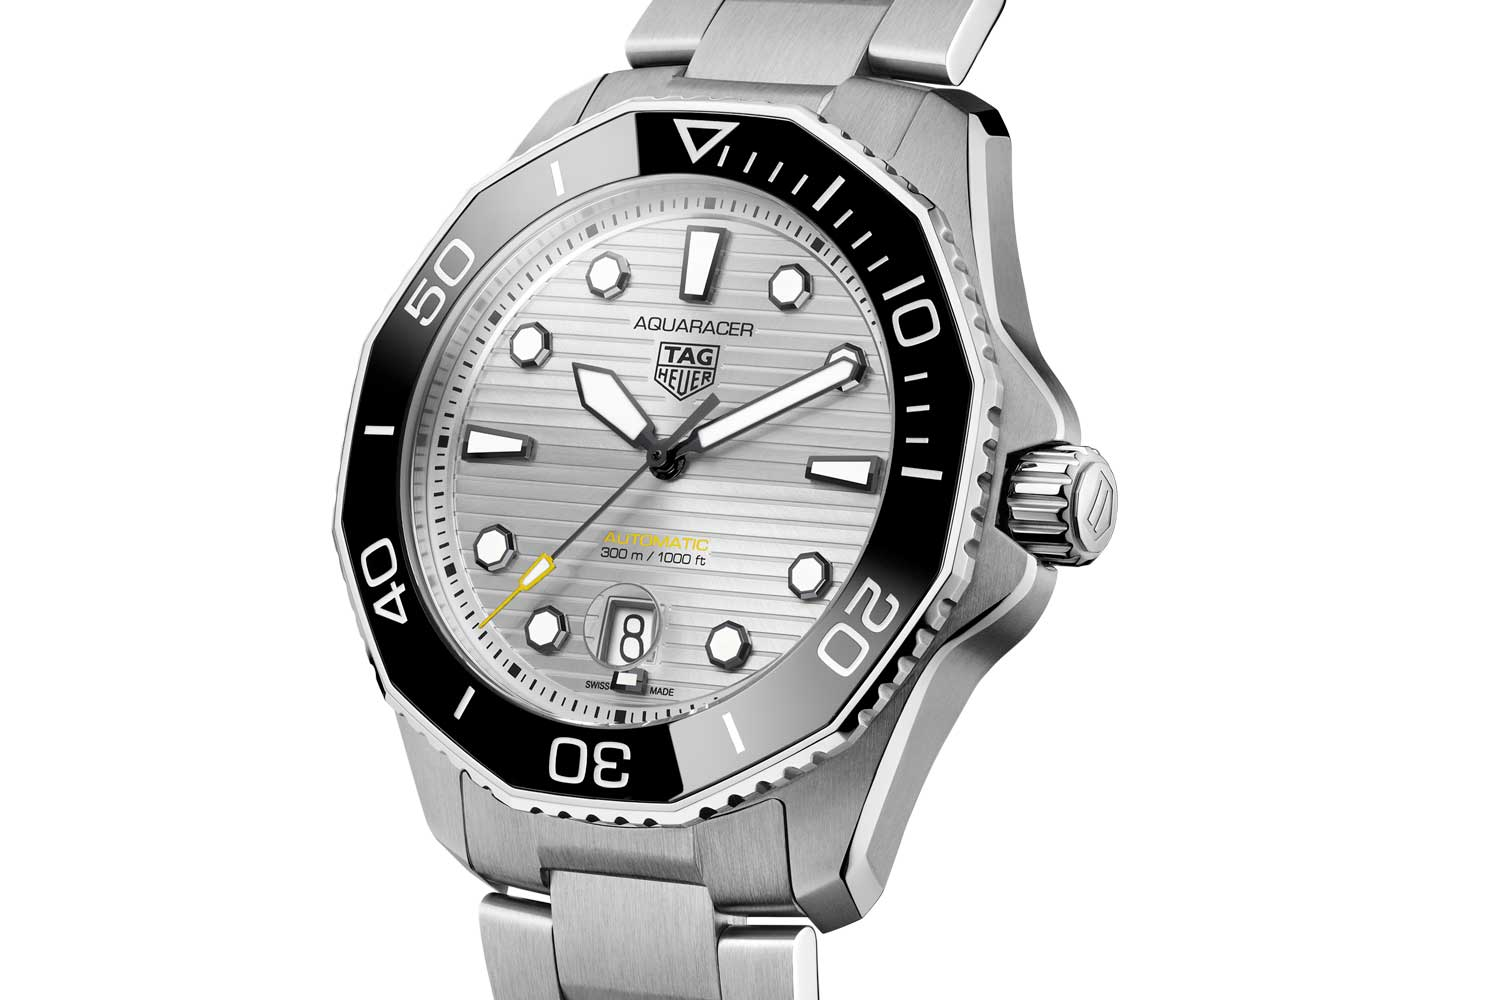 Available in two sizes, 36 mm and 43 mm, the Aquaracer 300 is water-resistant up to 300 meters.